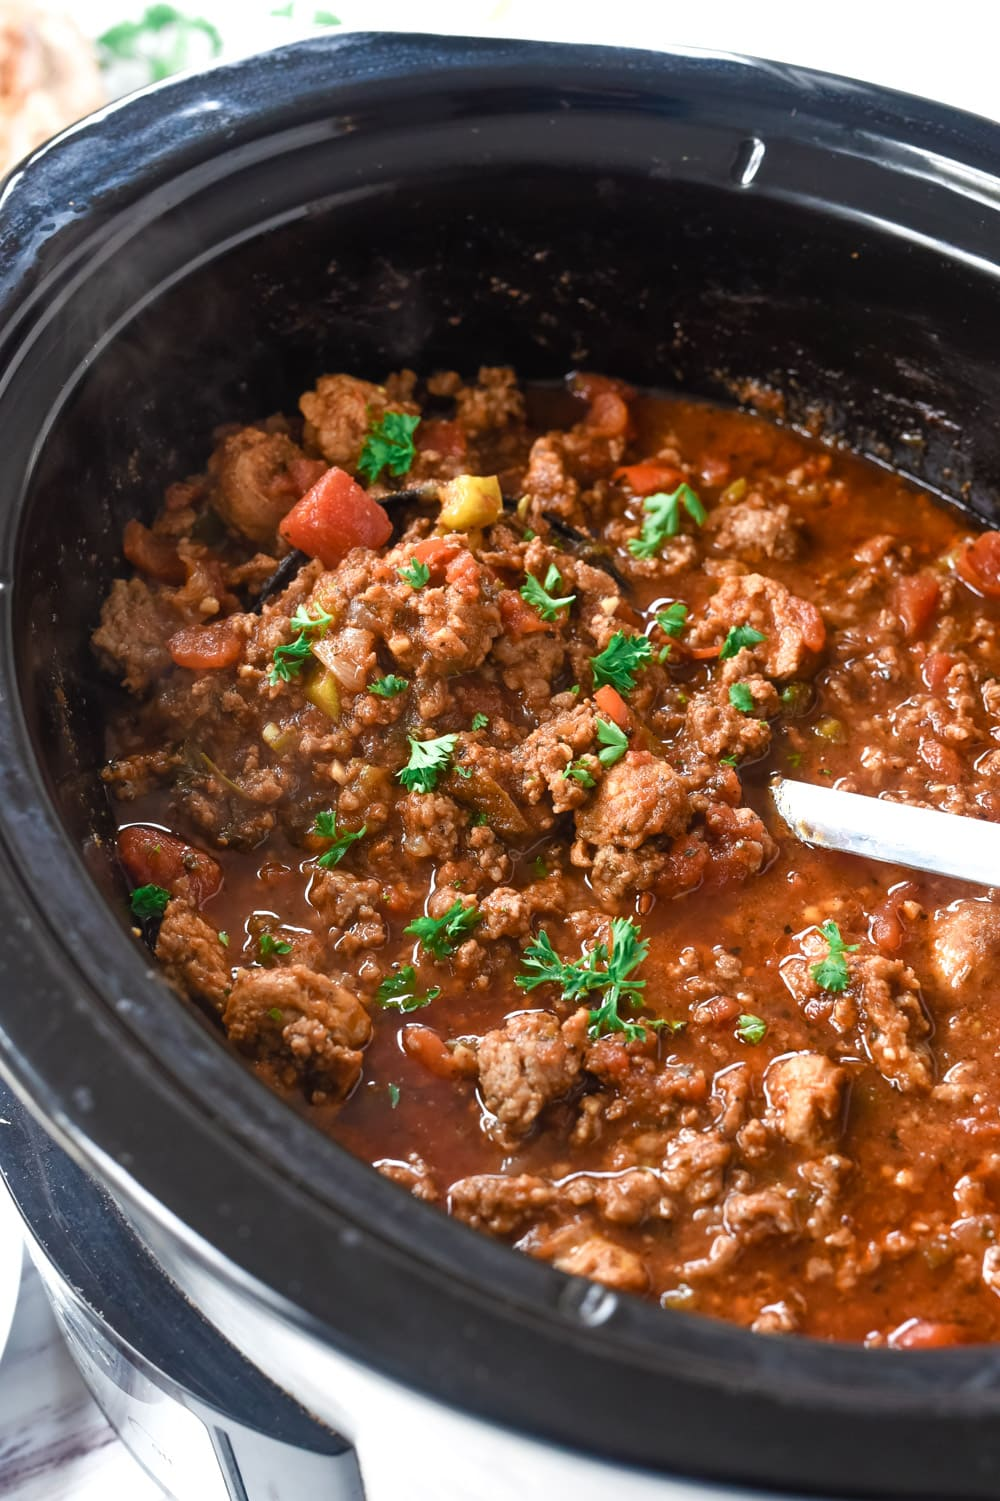 crockpot full of sausage chili